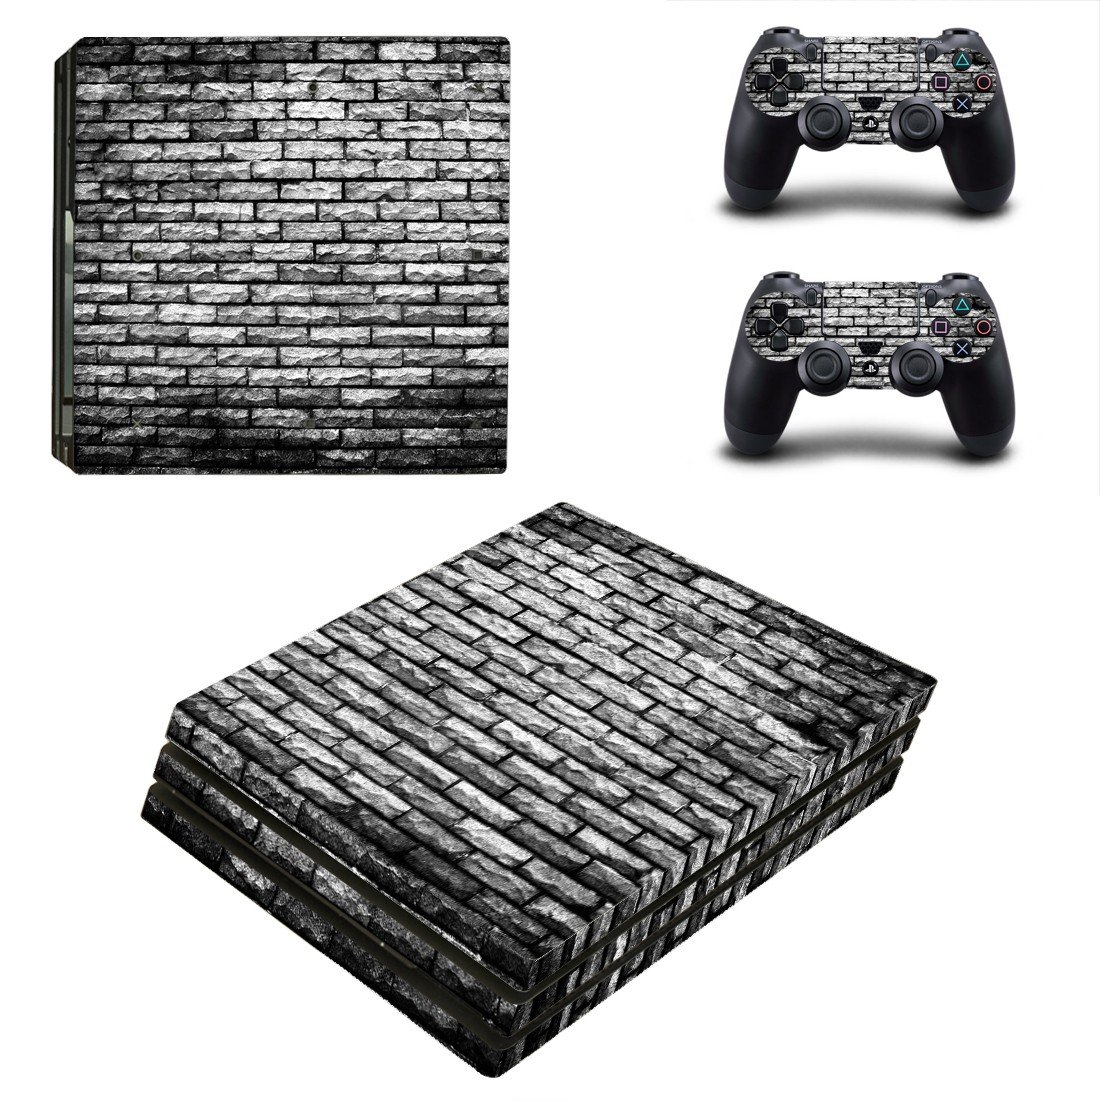 Shade Brick wall ps4 pro skin decal for console and controllers